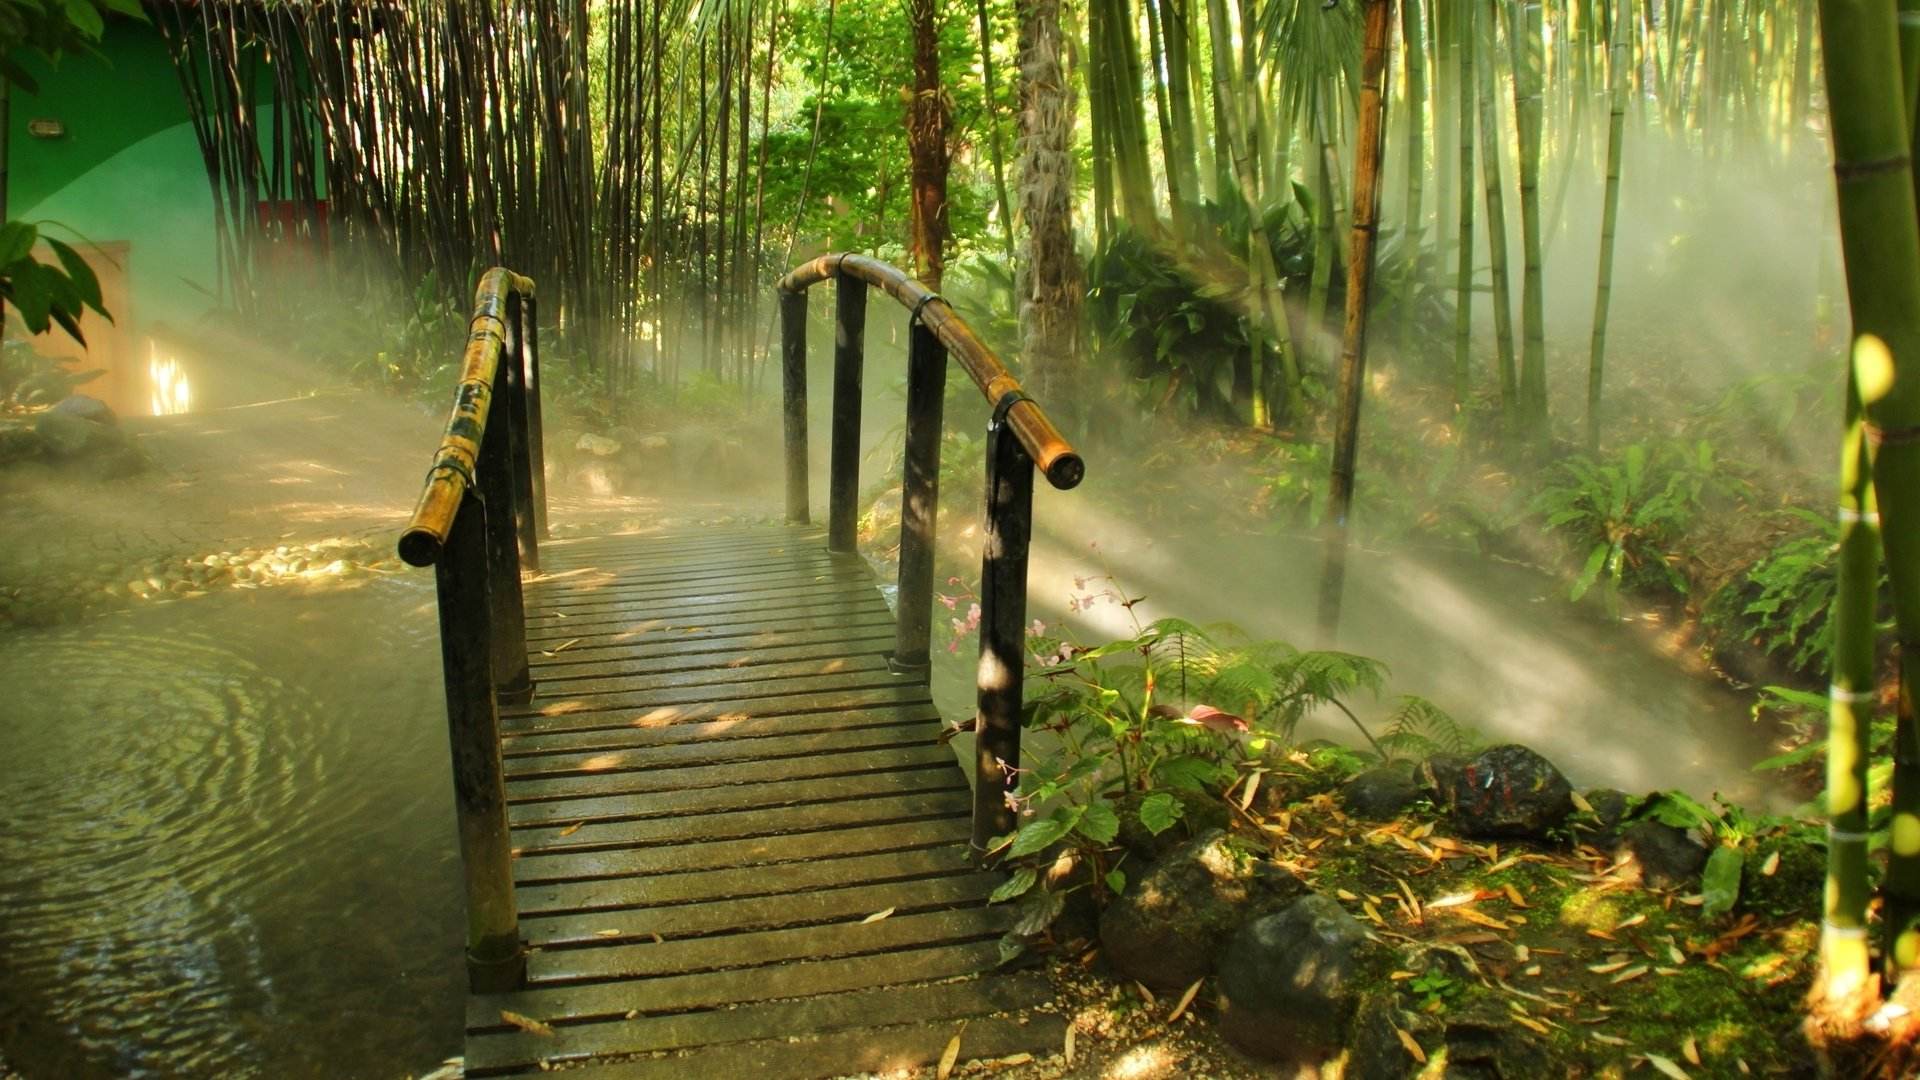 Download Free Bamboo Forest Background - Page 2 of 3